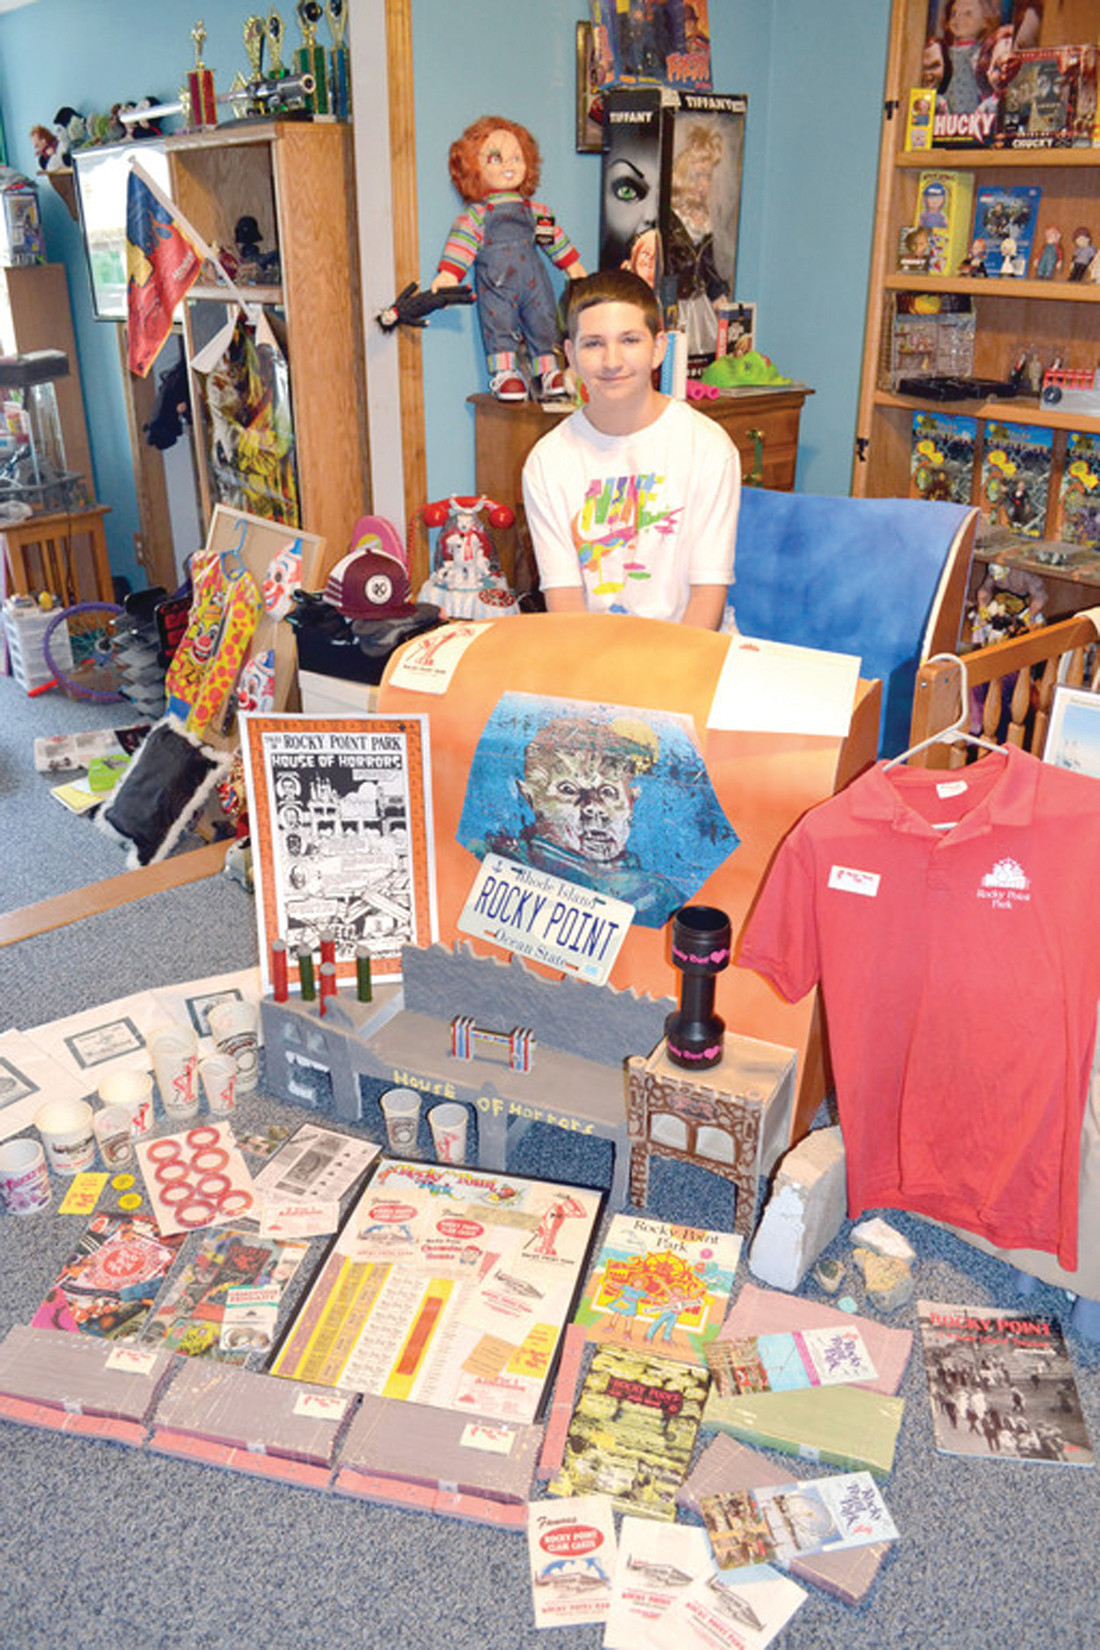 THEN: Fifteen-year-old Sean McCarthy sits in a lifelike recreation of a Rocky Point House of Horrors car, which he designed and built himself. Surrounding the car are just some of the many Rocky Point items he's collected during the past several years.